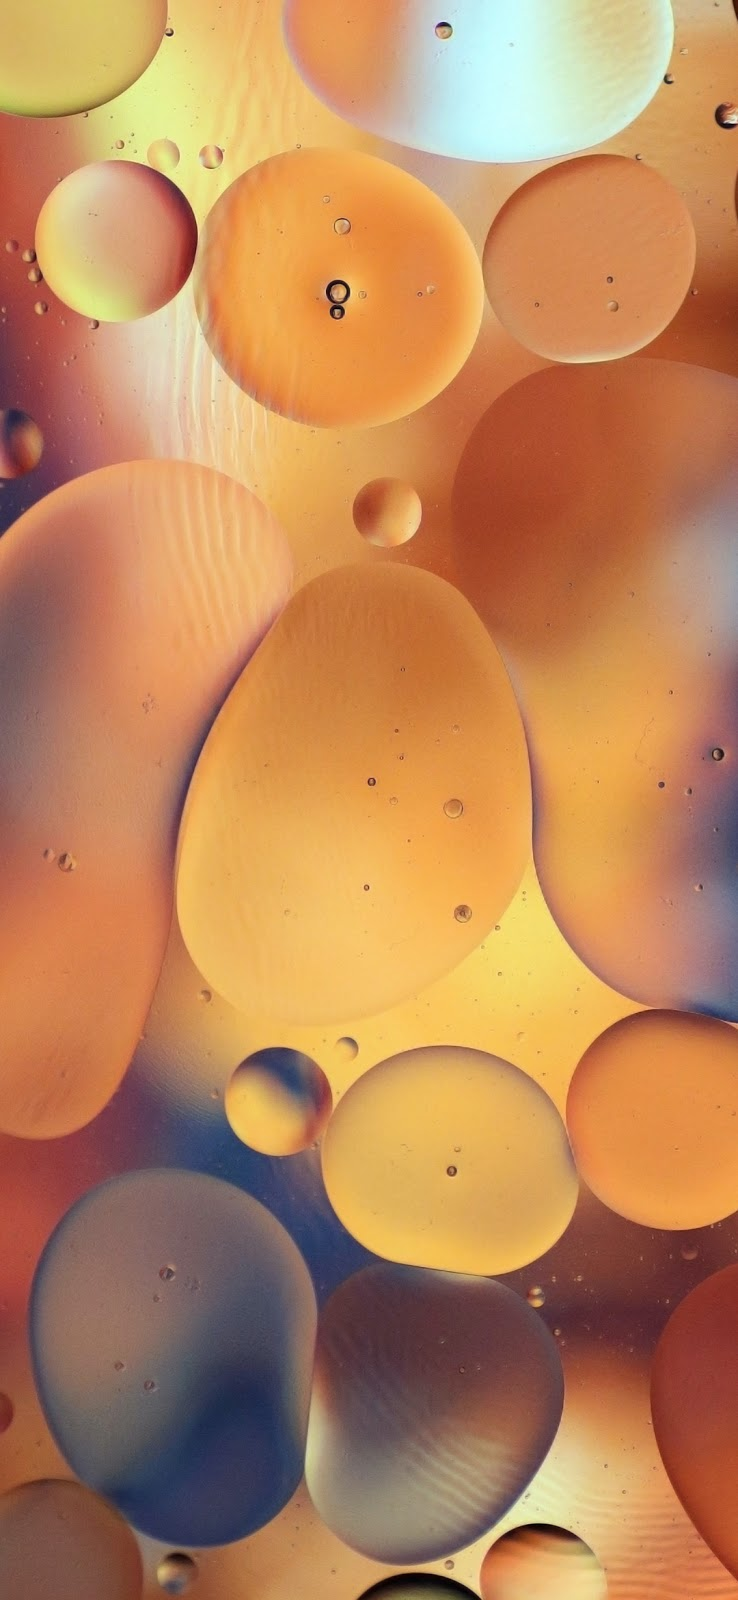 cool brown bubbles trapped inside water wallpaper